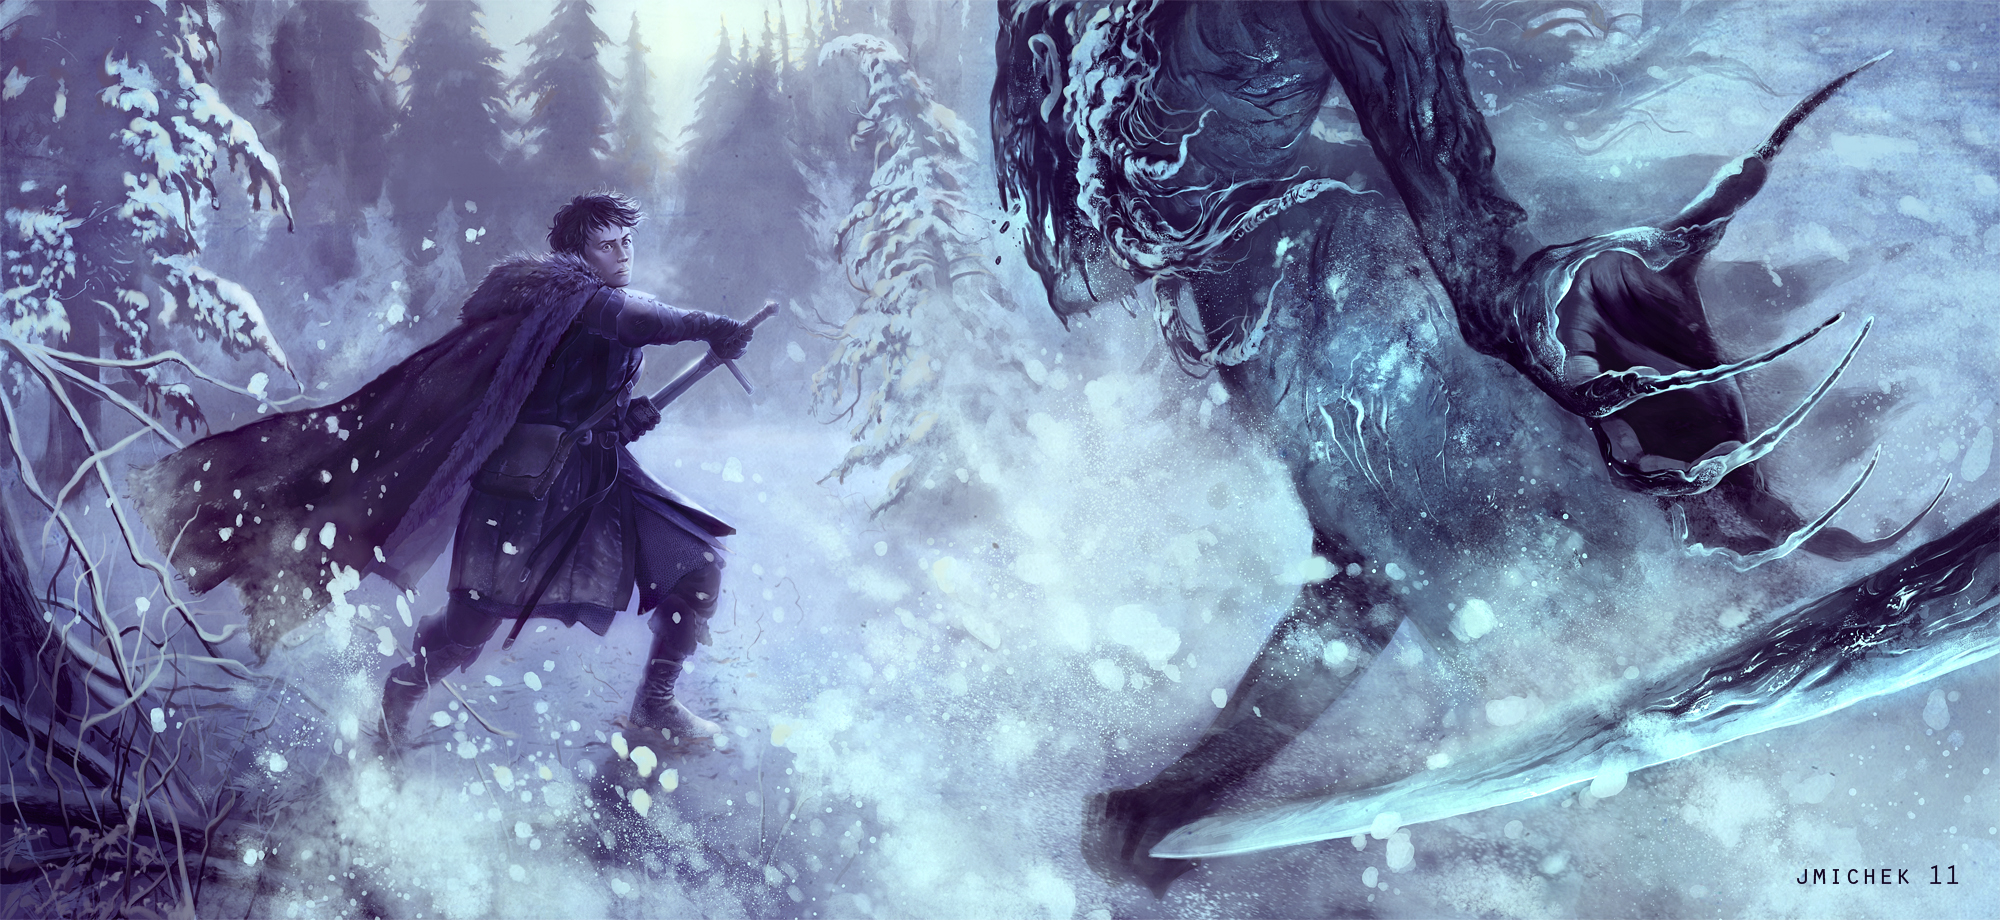 The others game of thrones art